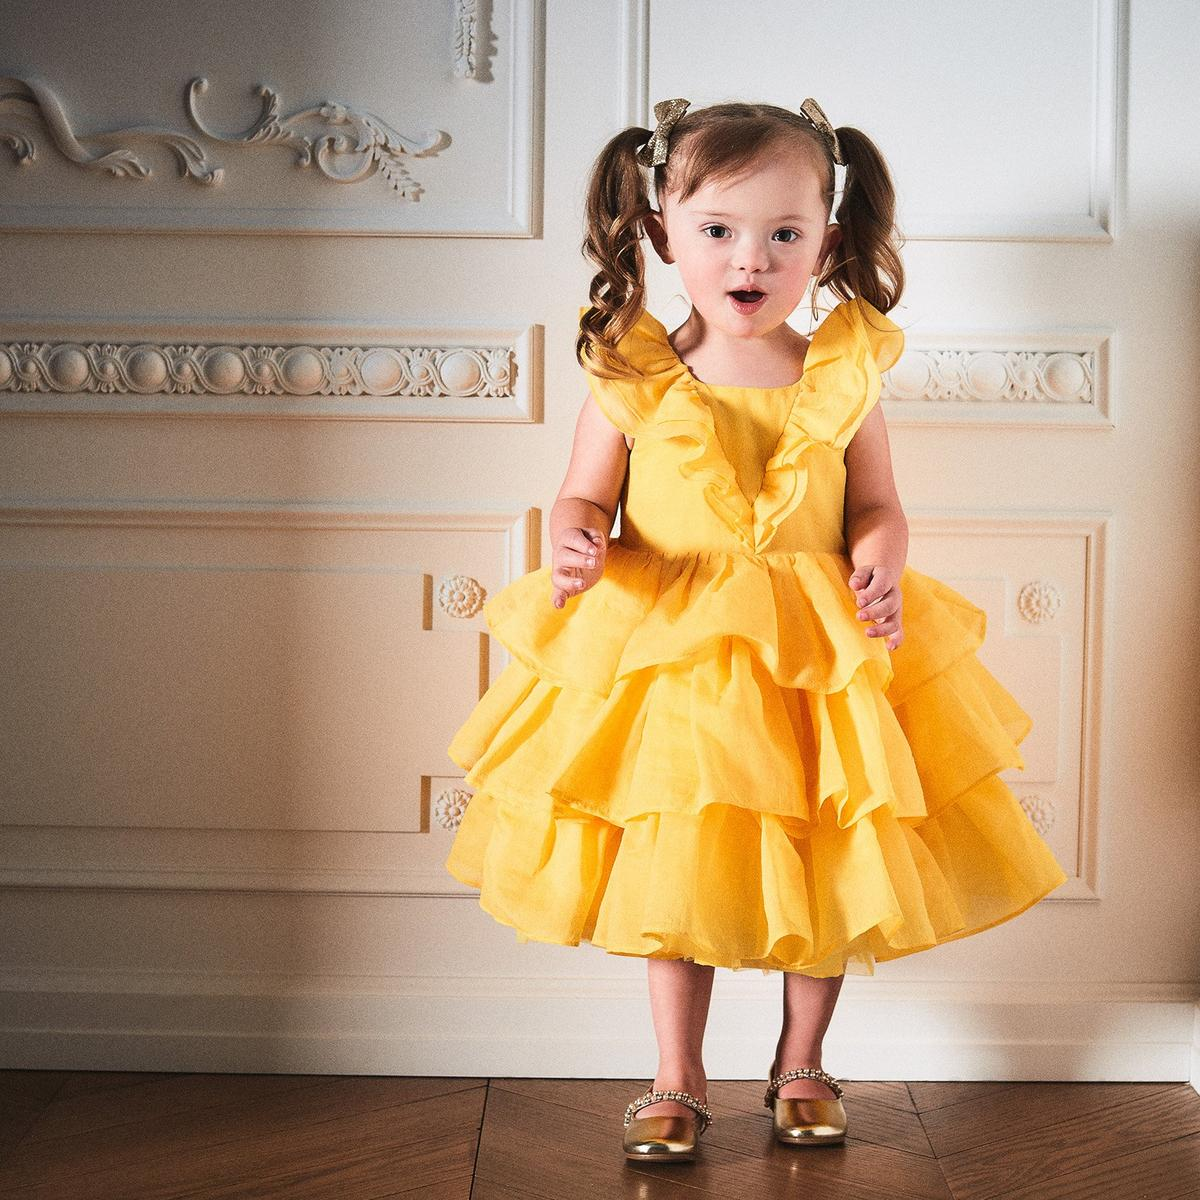 Janie and Jack's new Disney Princess line is inspired by Ariel, Belle, Cinderella, and Tiana 18